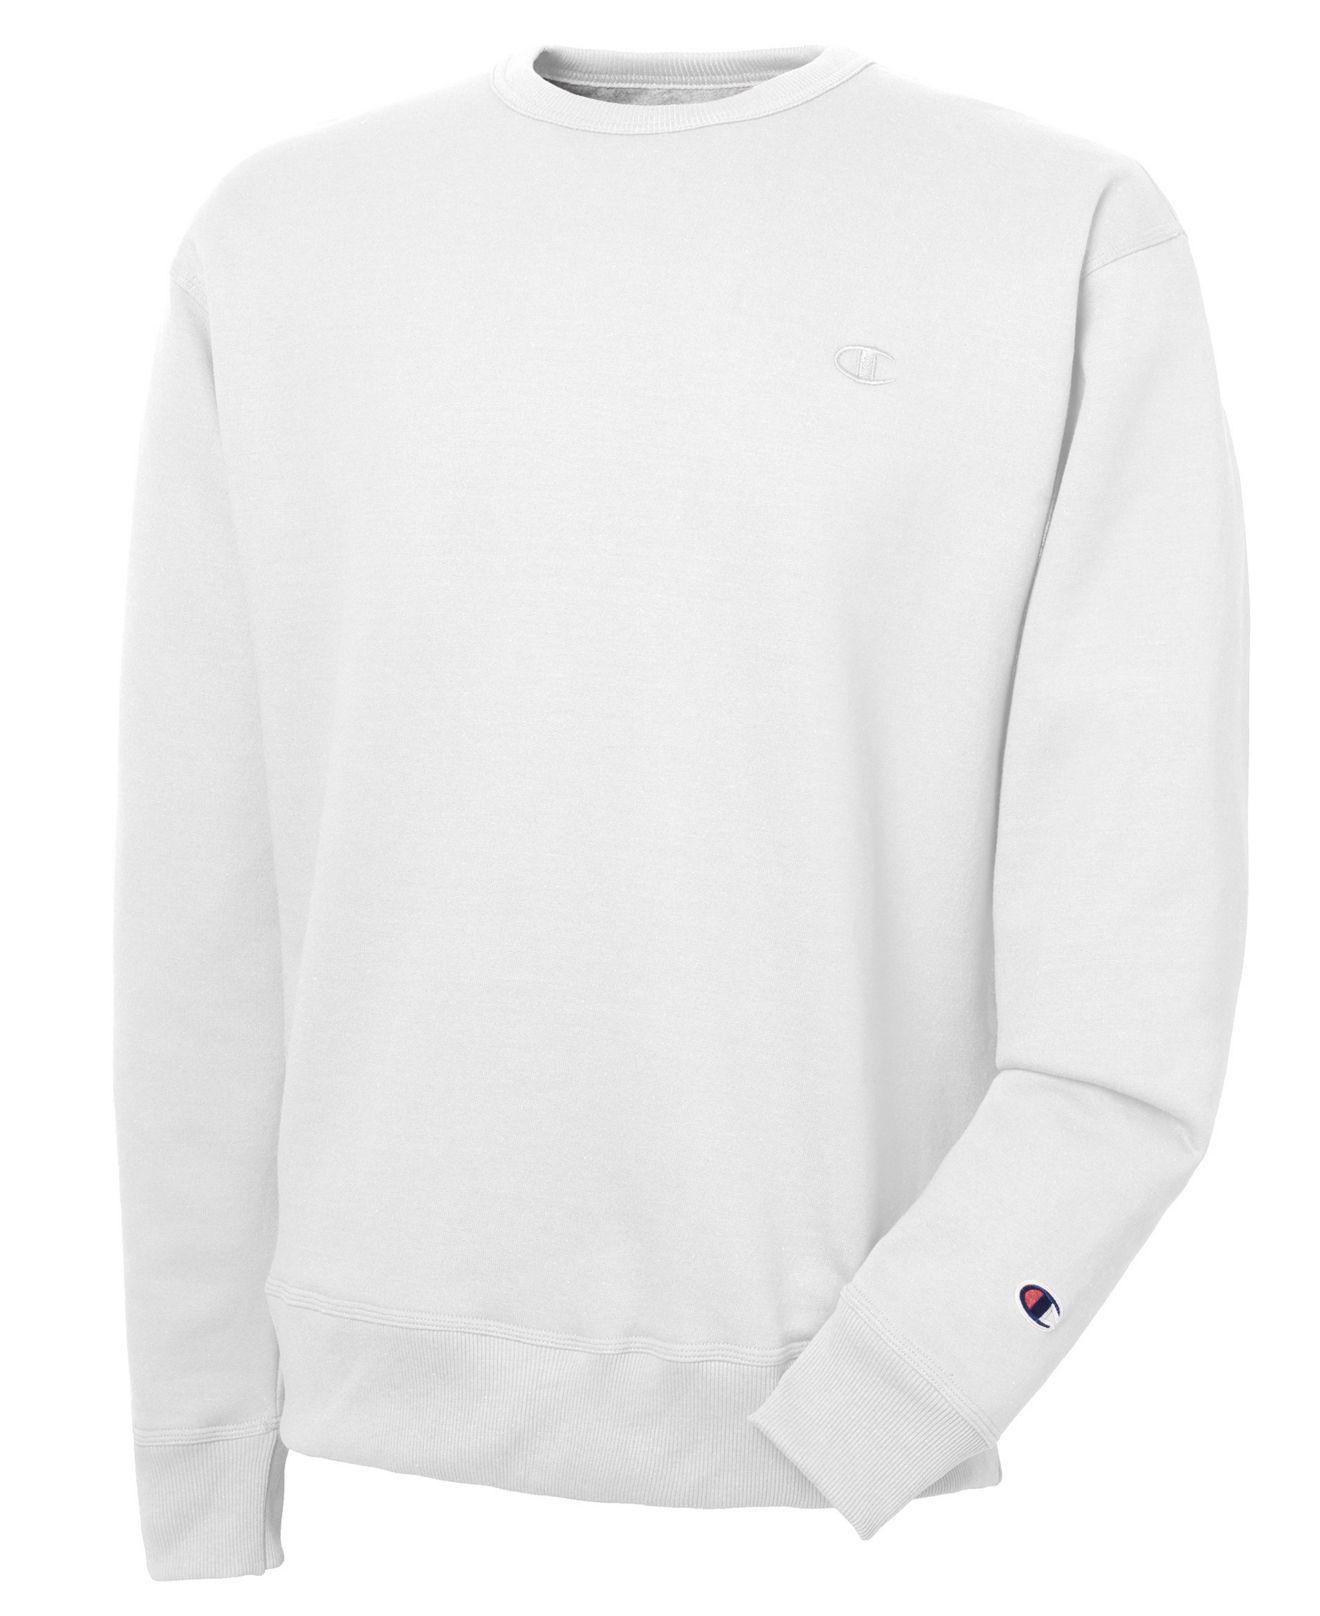 In Champion For Men White Powerblend Sweatshirt Fleece Lyst Men's gpdXZxnv